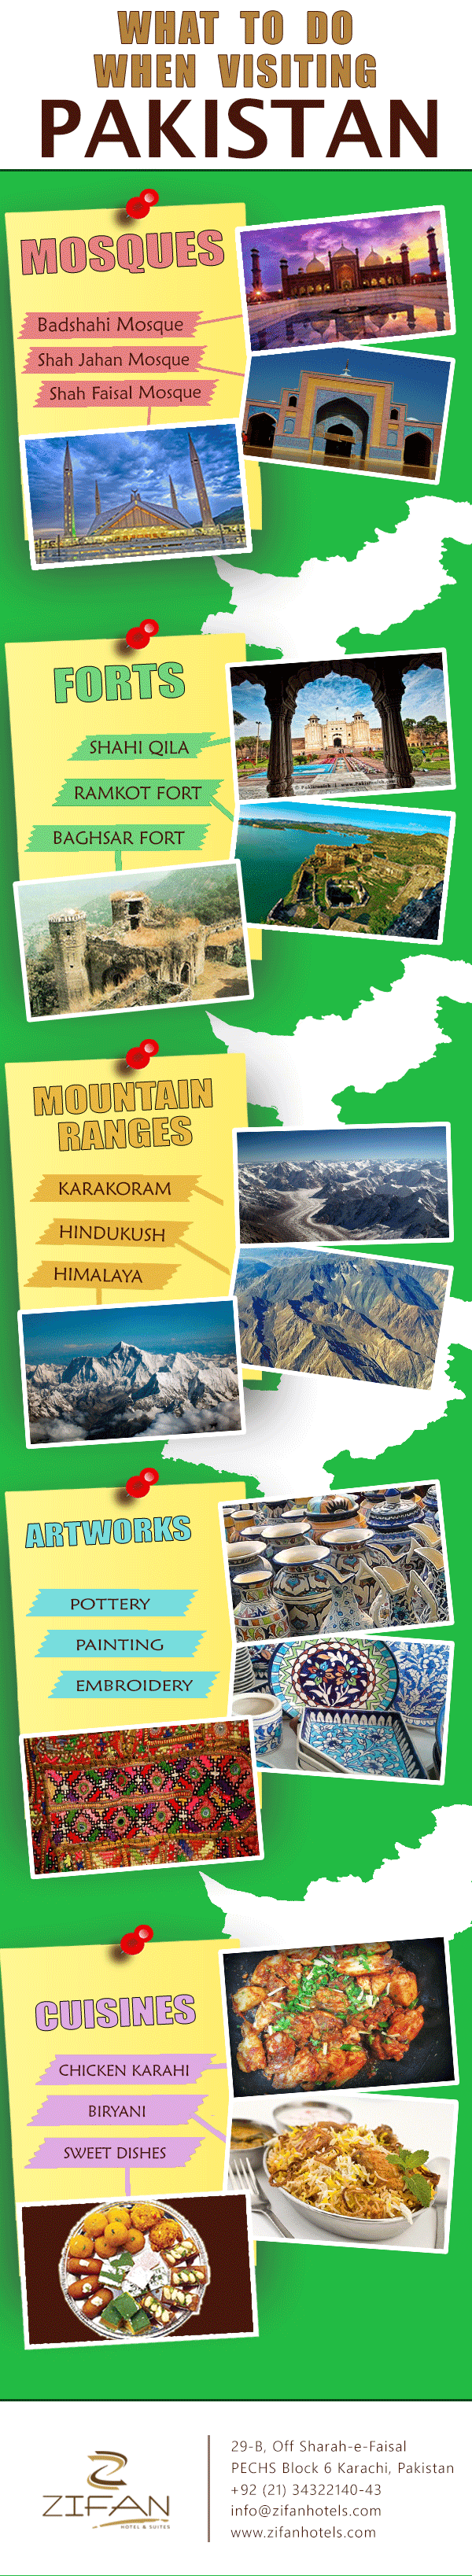 What to Do When Visiting Pakistan #infographic